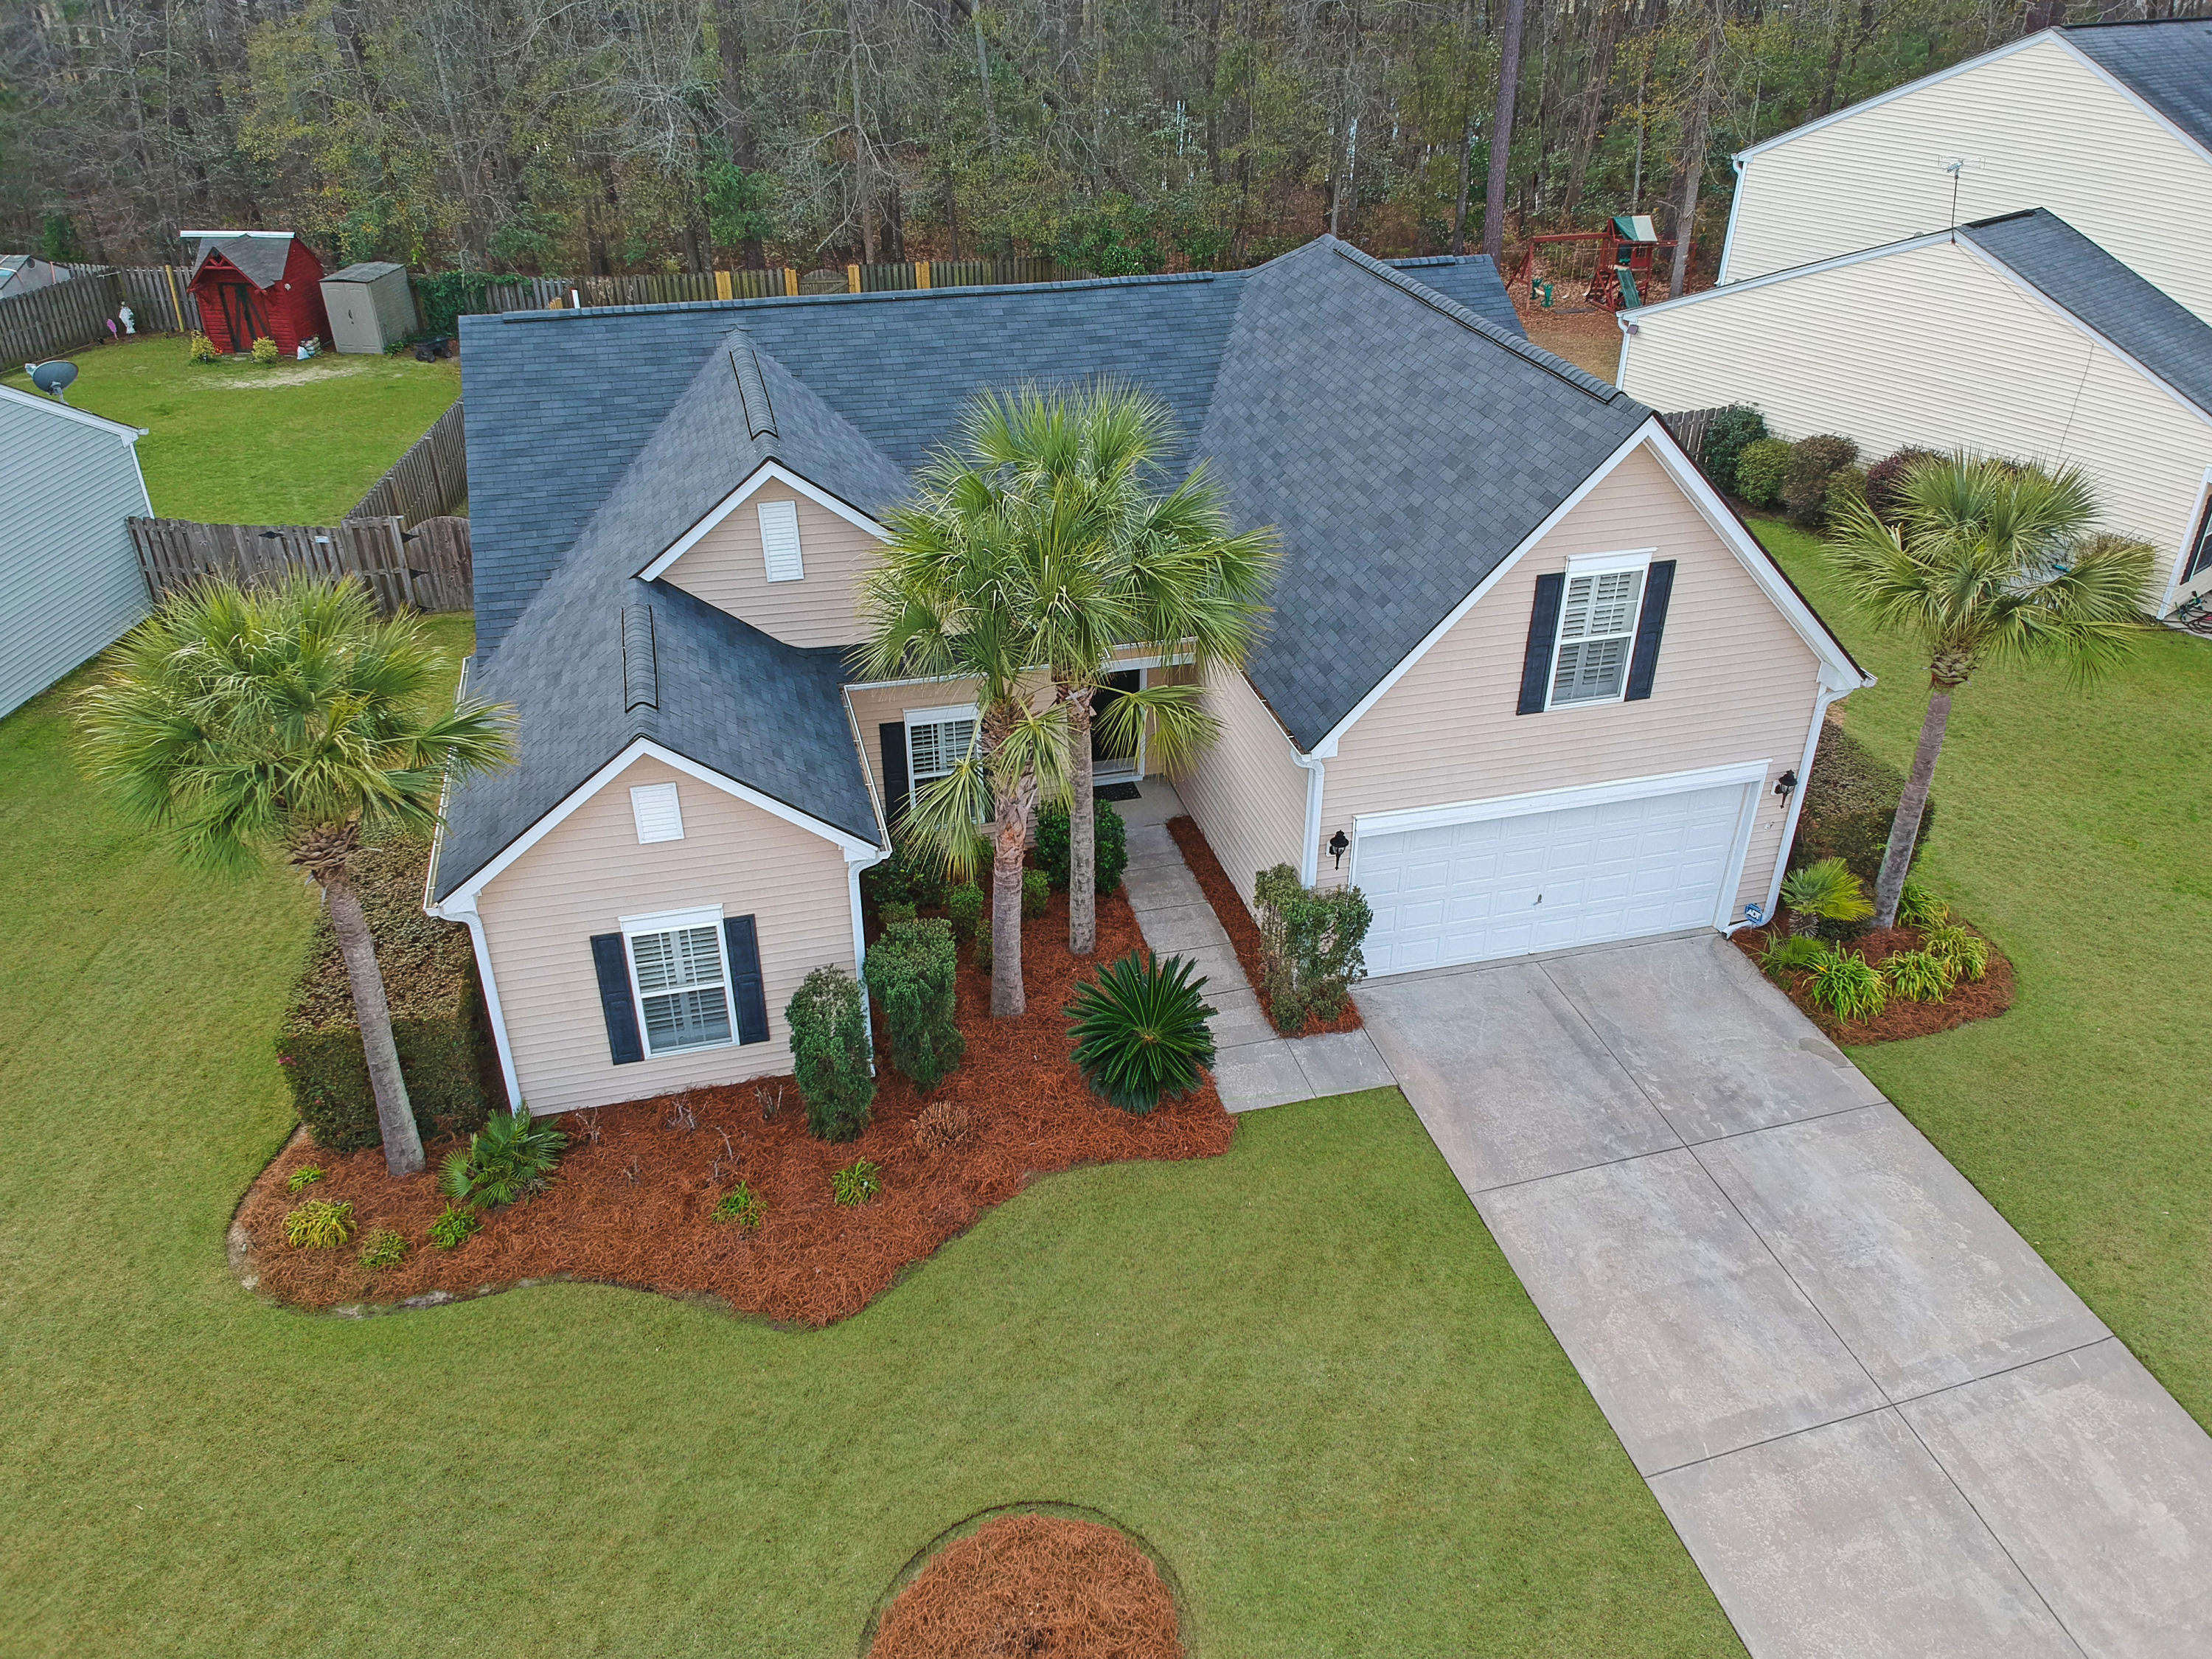 3375 Fletton Way Summerville, Sc 29485